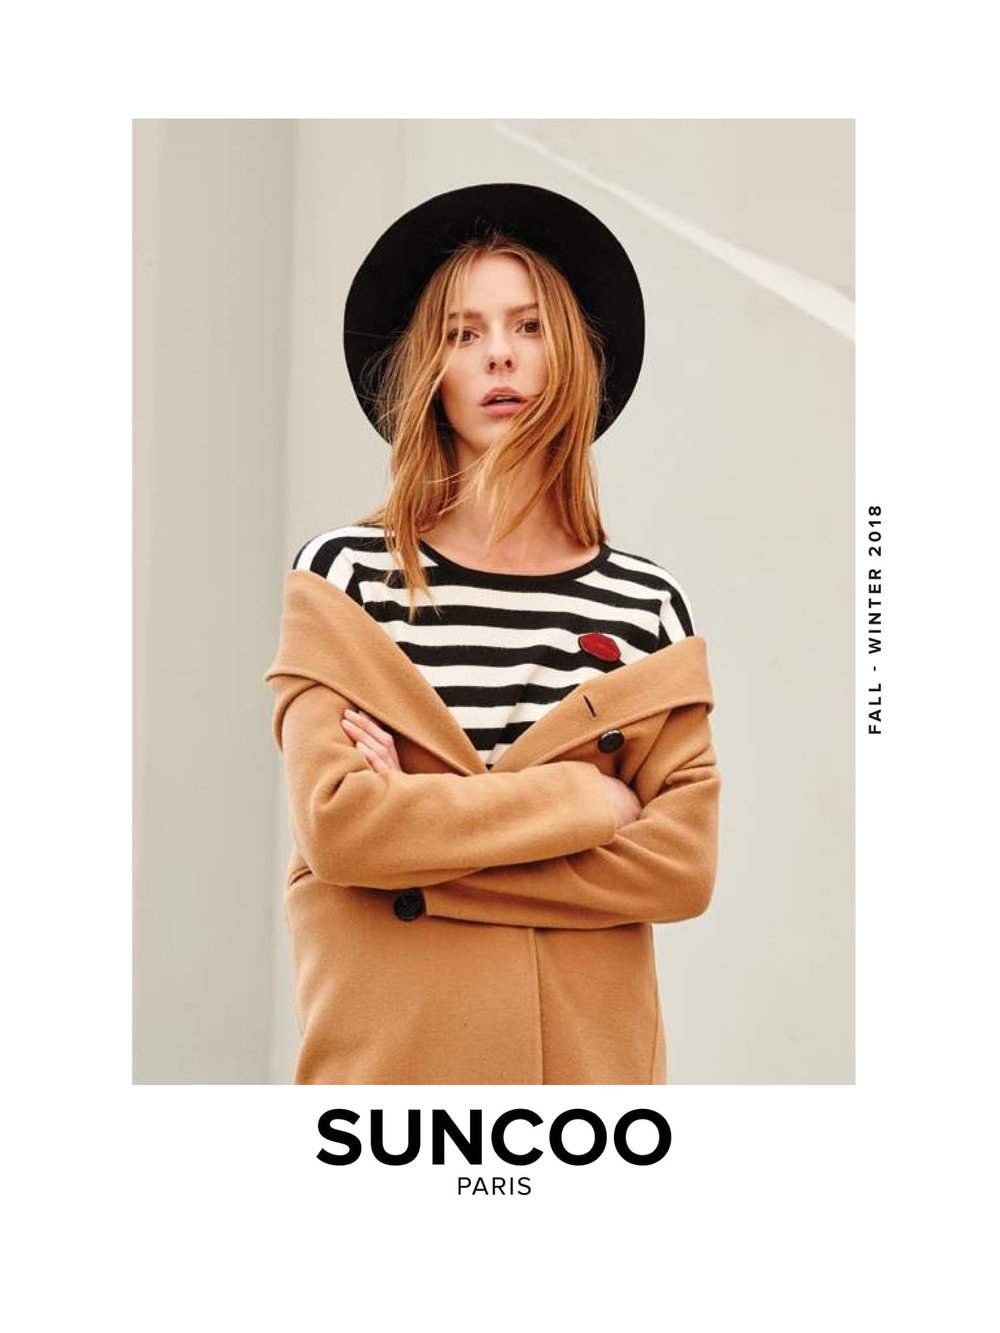 Suncoo_1_41_suncoo_catalogue_fw18.jpgressed-01.jpg